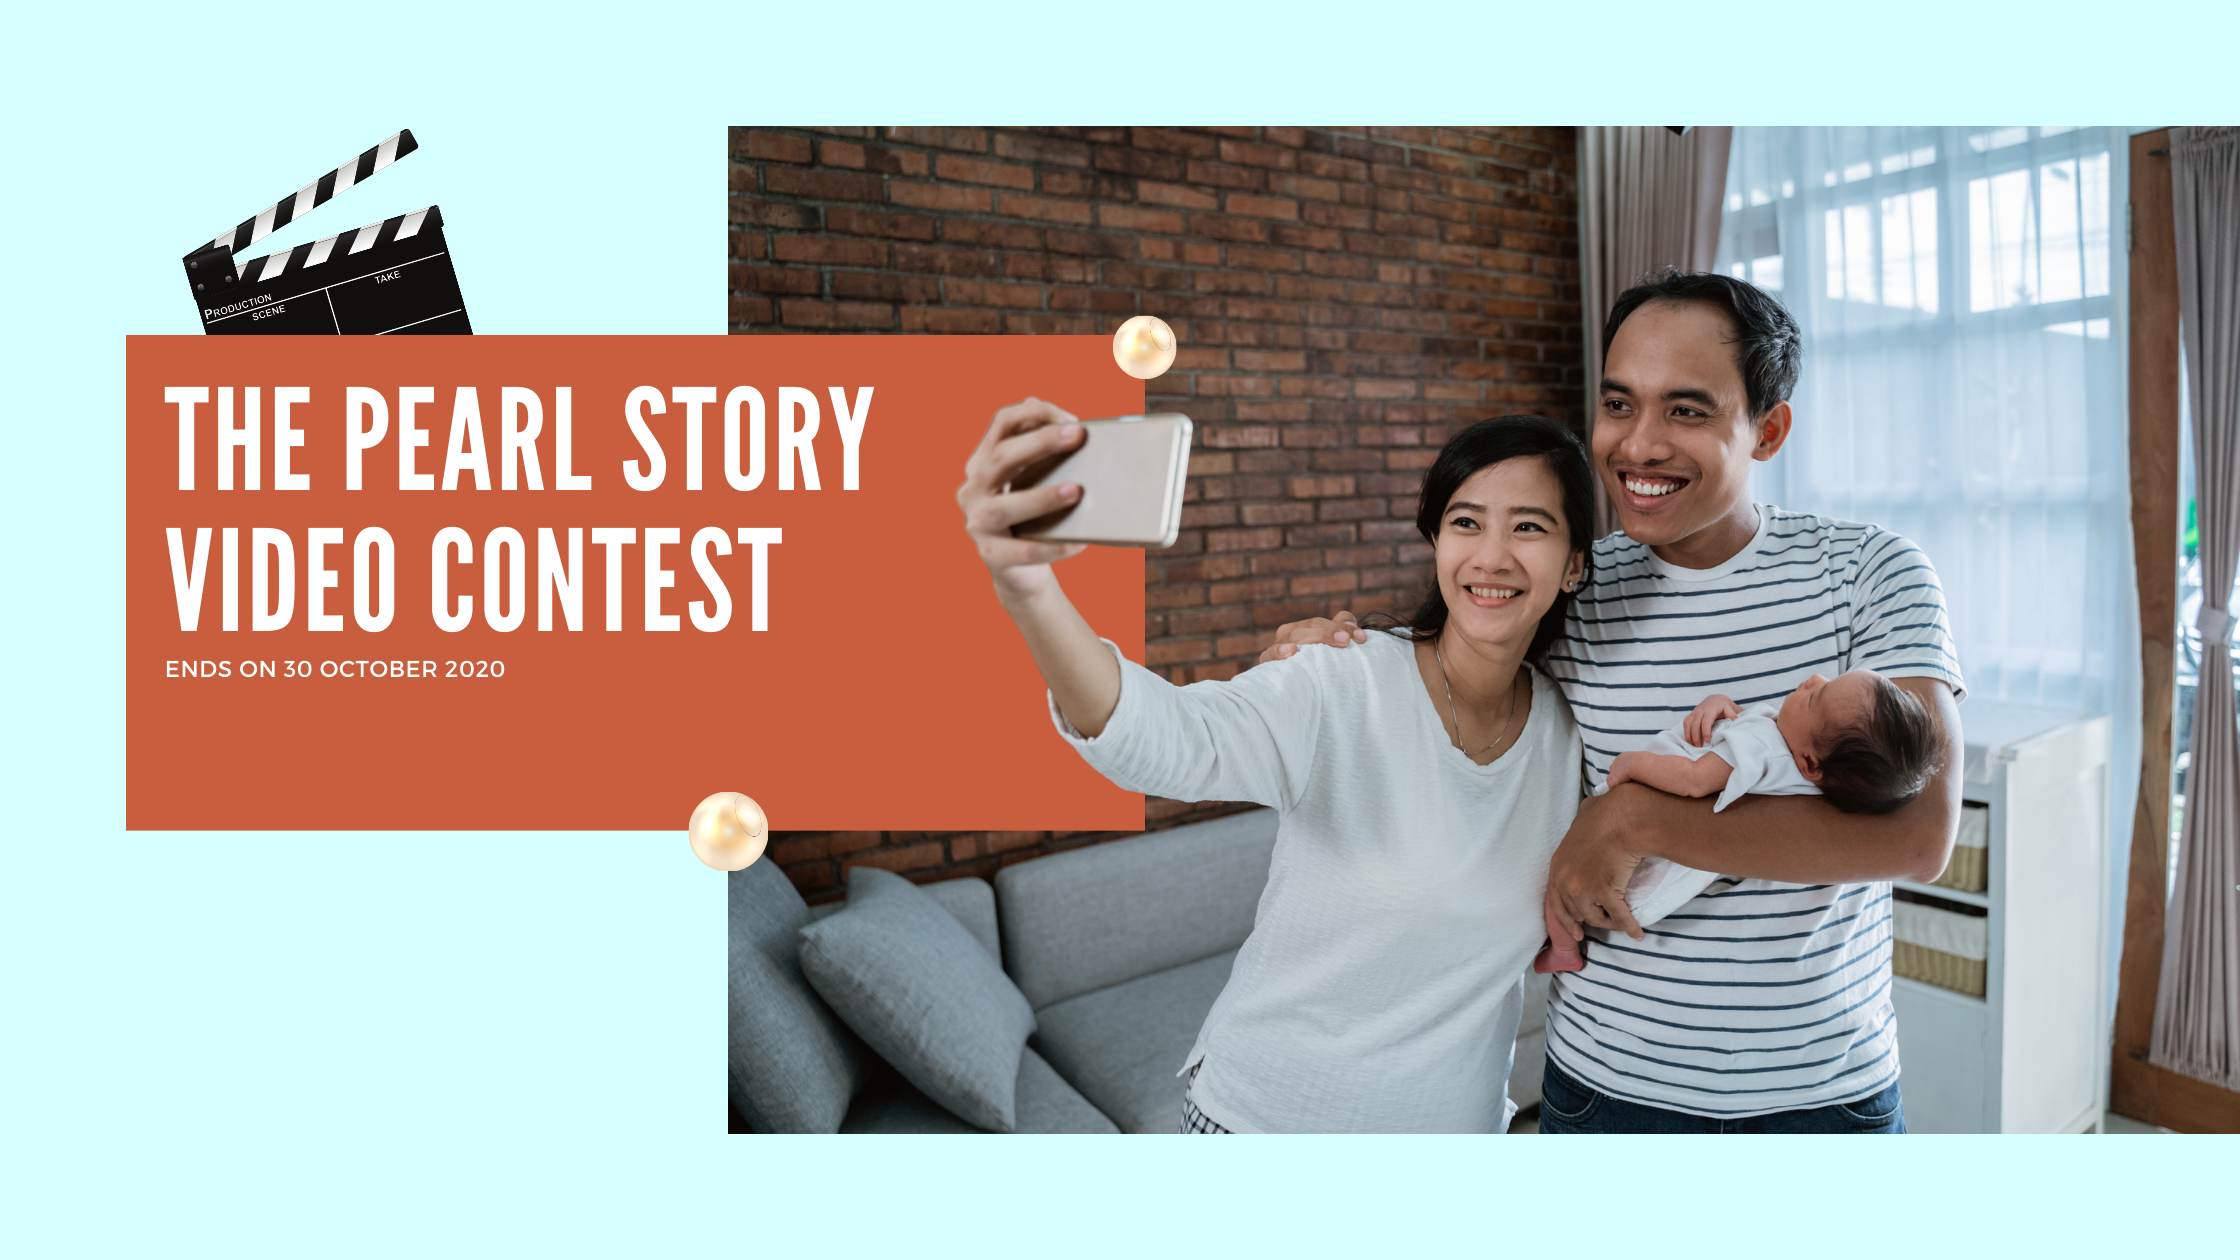 the-pearl-story-video-contest-andorra-ho